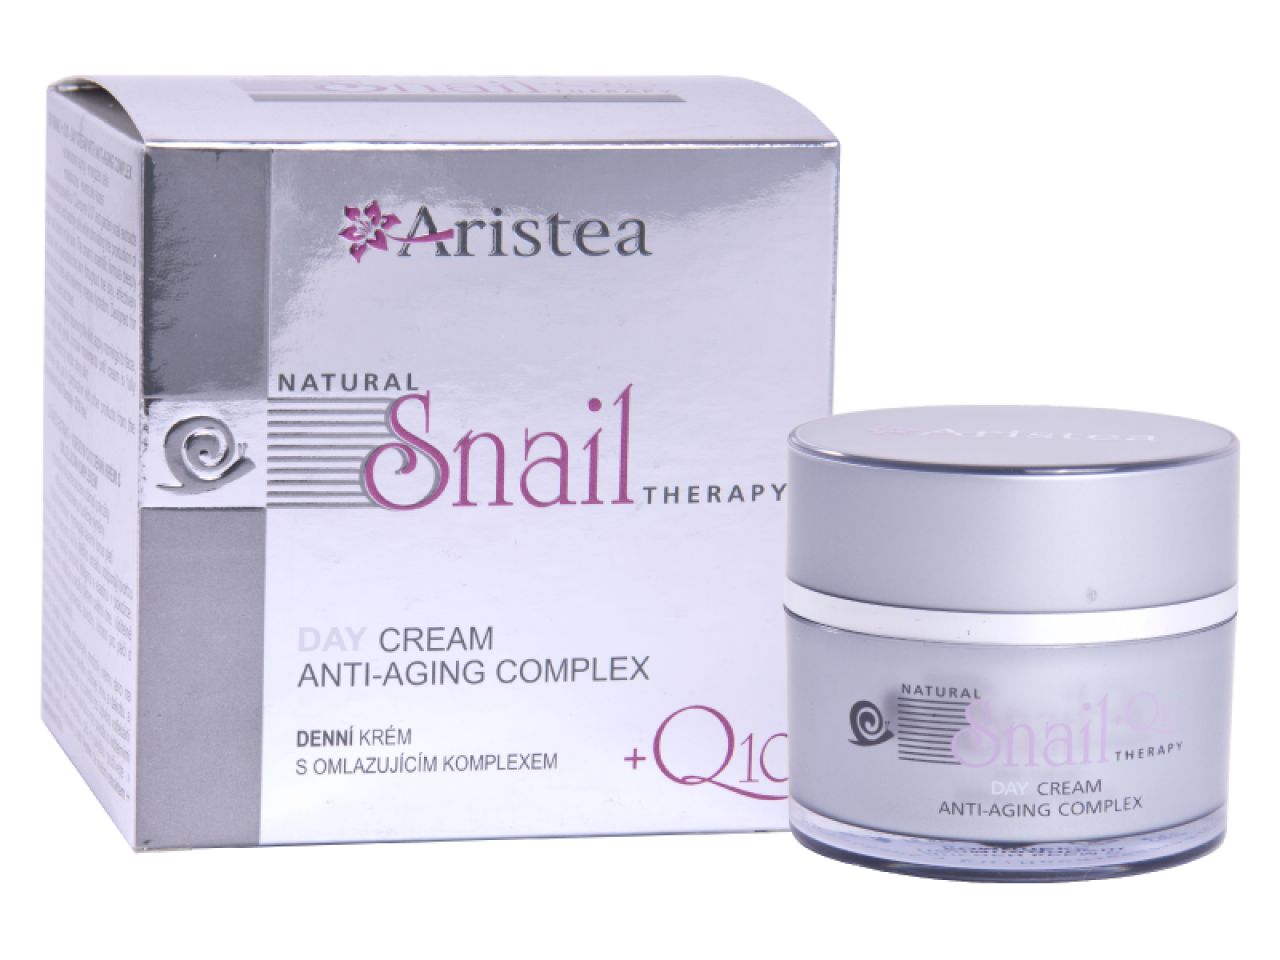 Day cream with anti-aging complex with snail extract and Q10